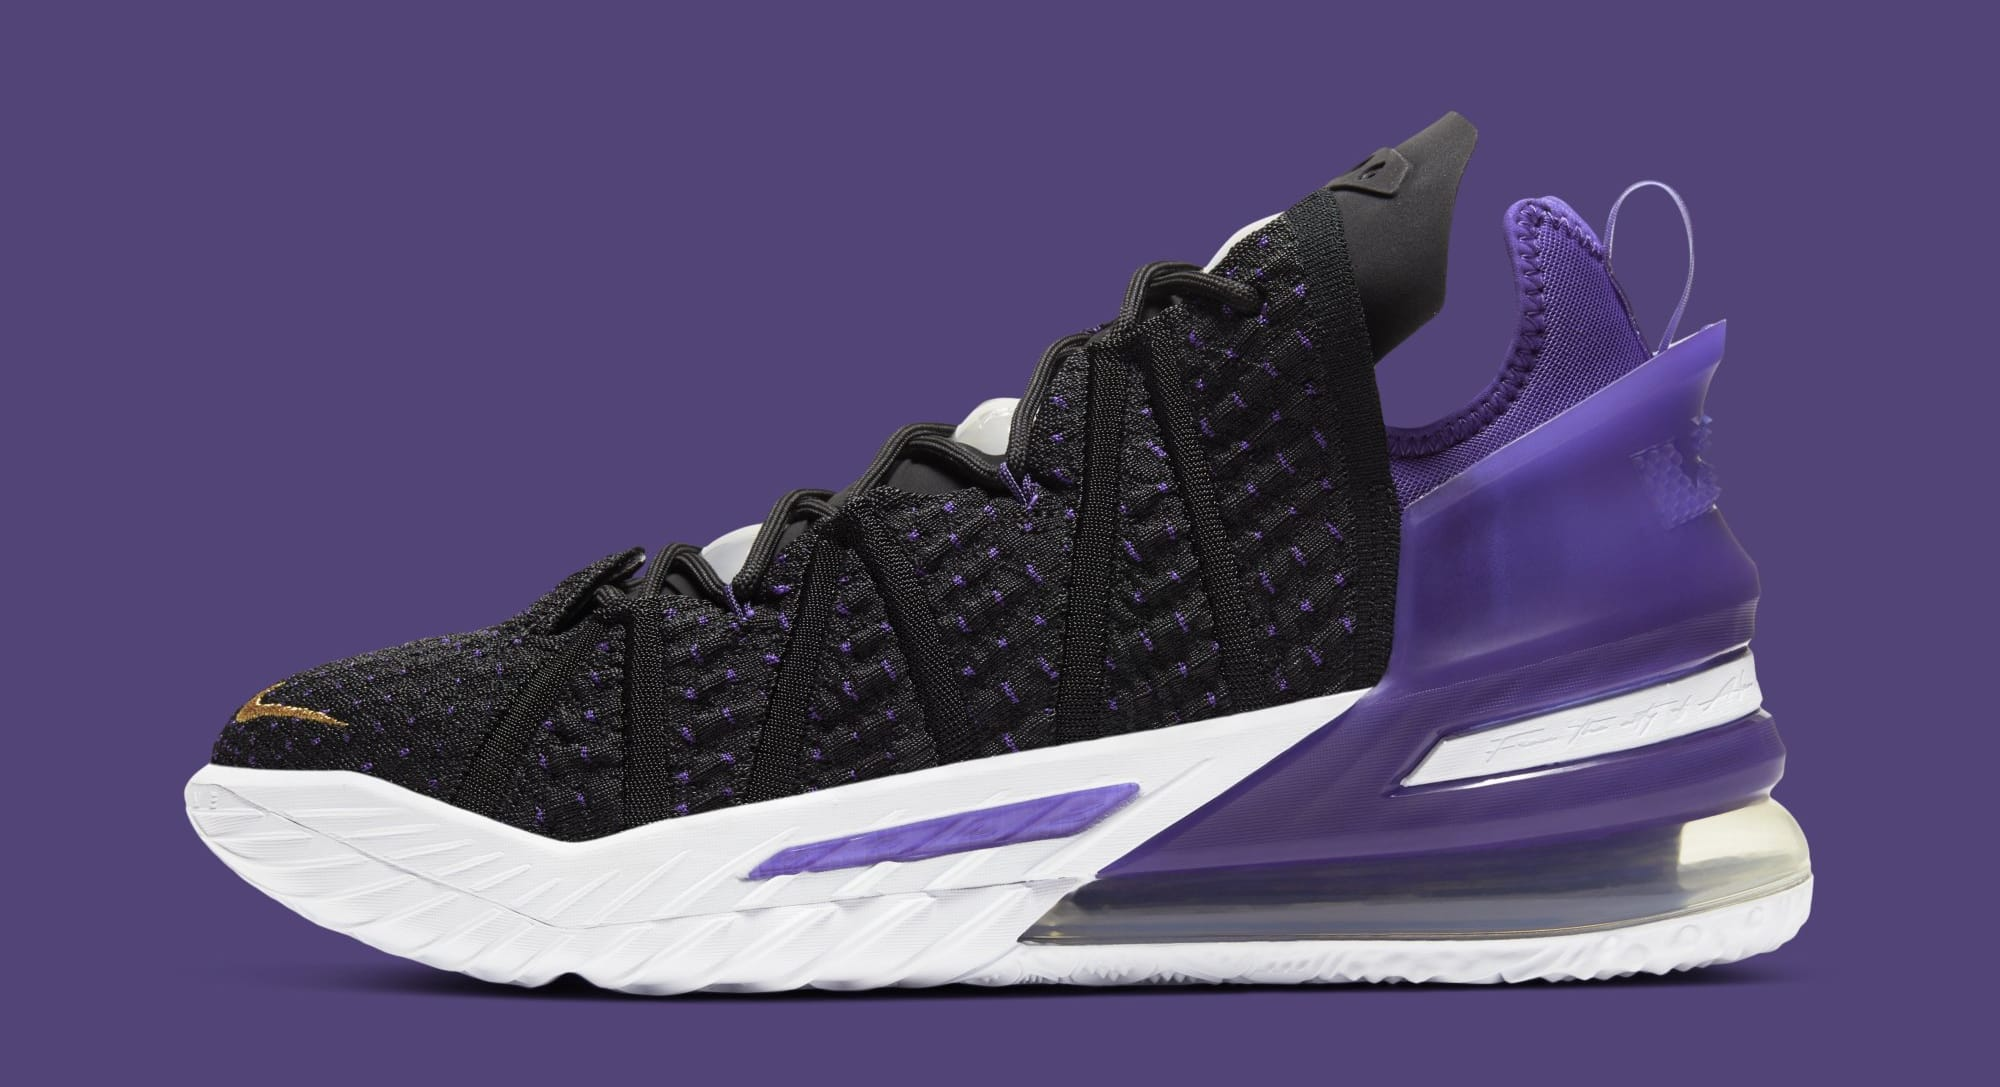 Nike LeBron 18 'Lakers' CQ9283-004 Lateral